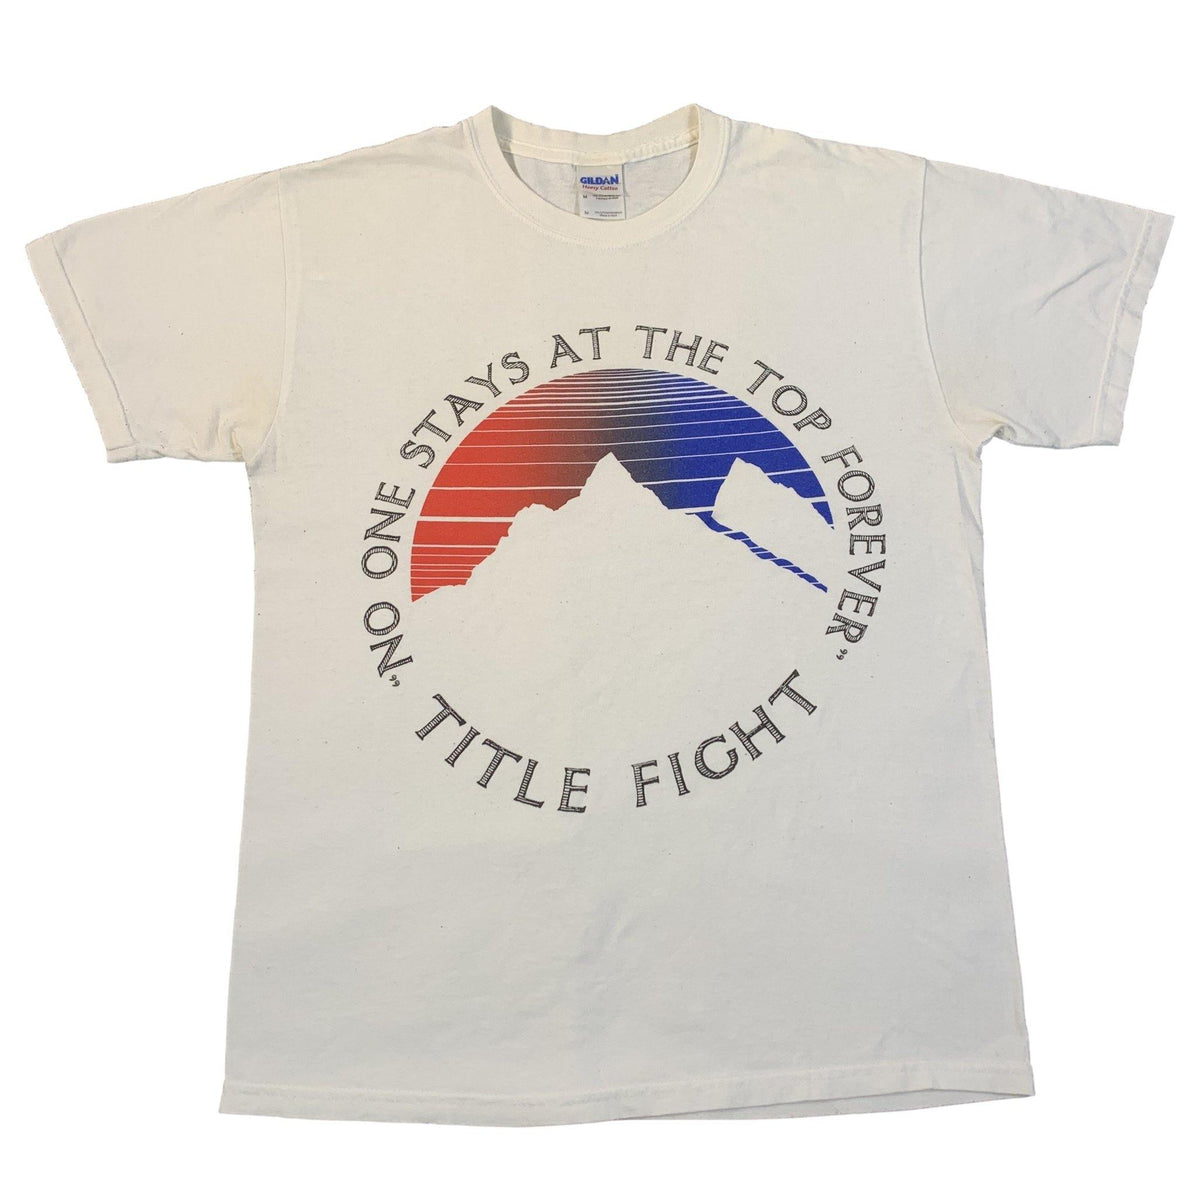 "Vintage Title Fight ""No One Stays At The Top Forever"" T-Shirt"